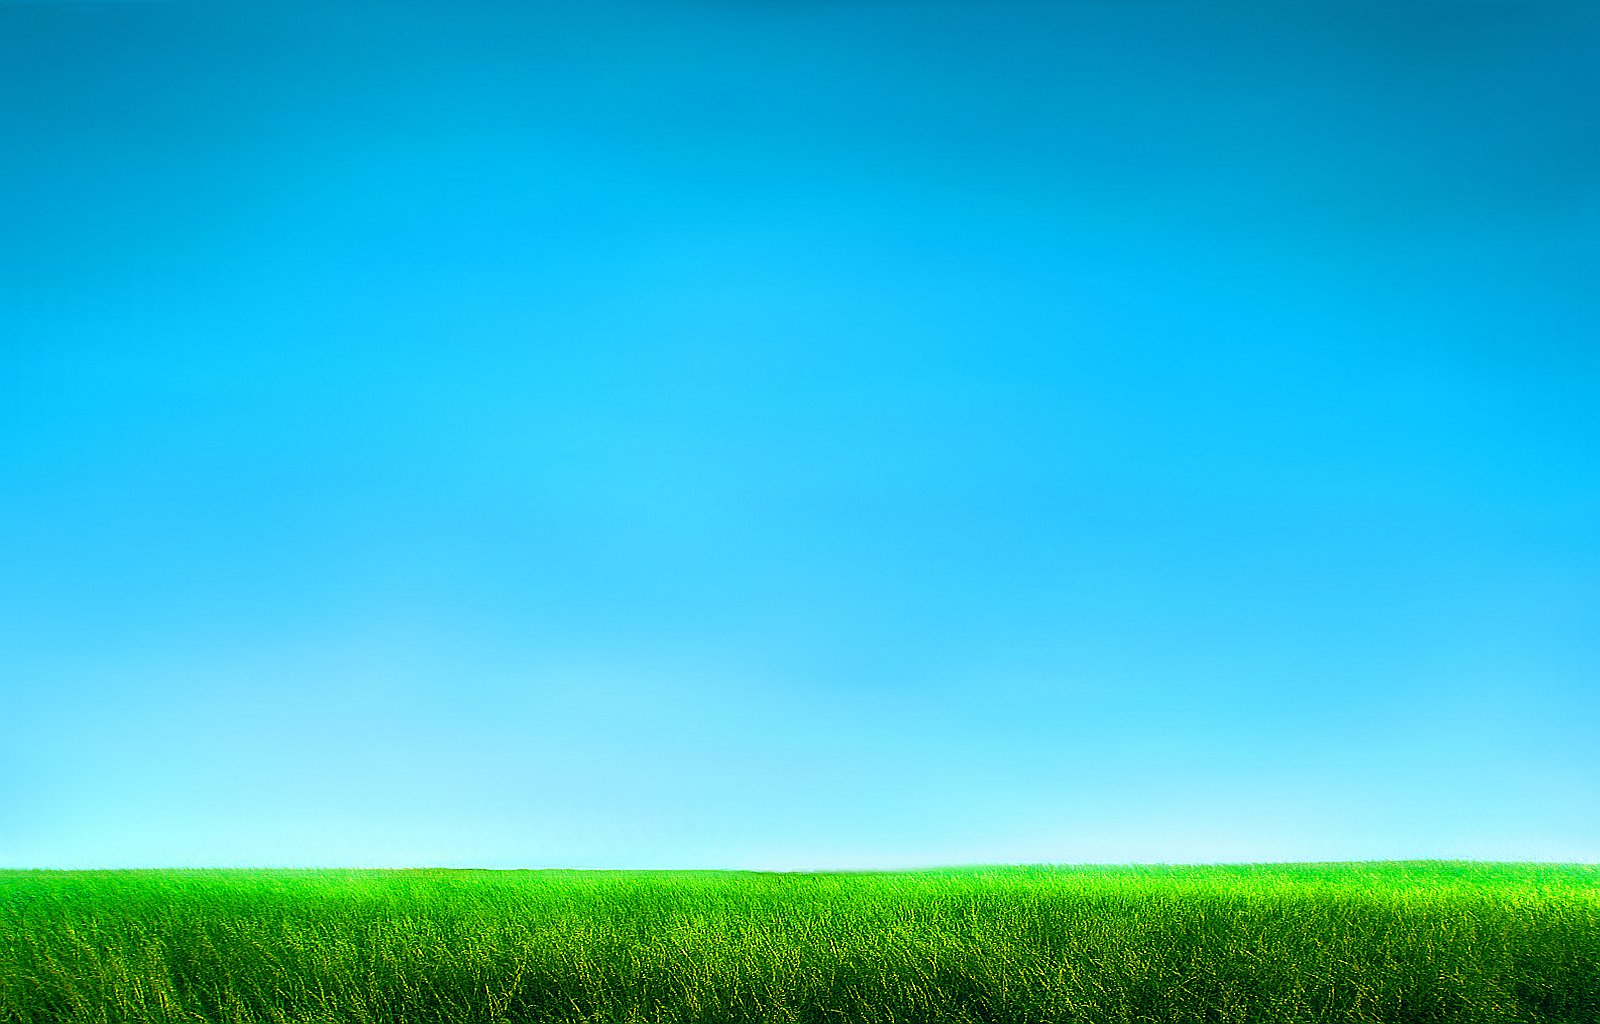 Grass and Sky Wallpaper - WallpaperSafari